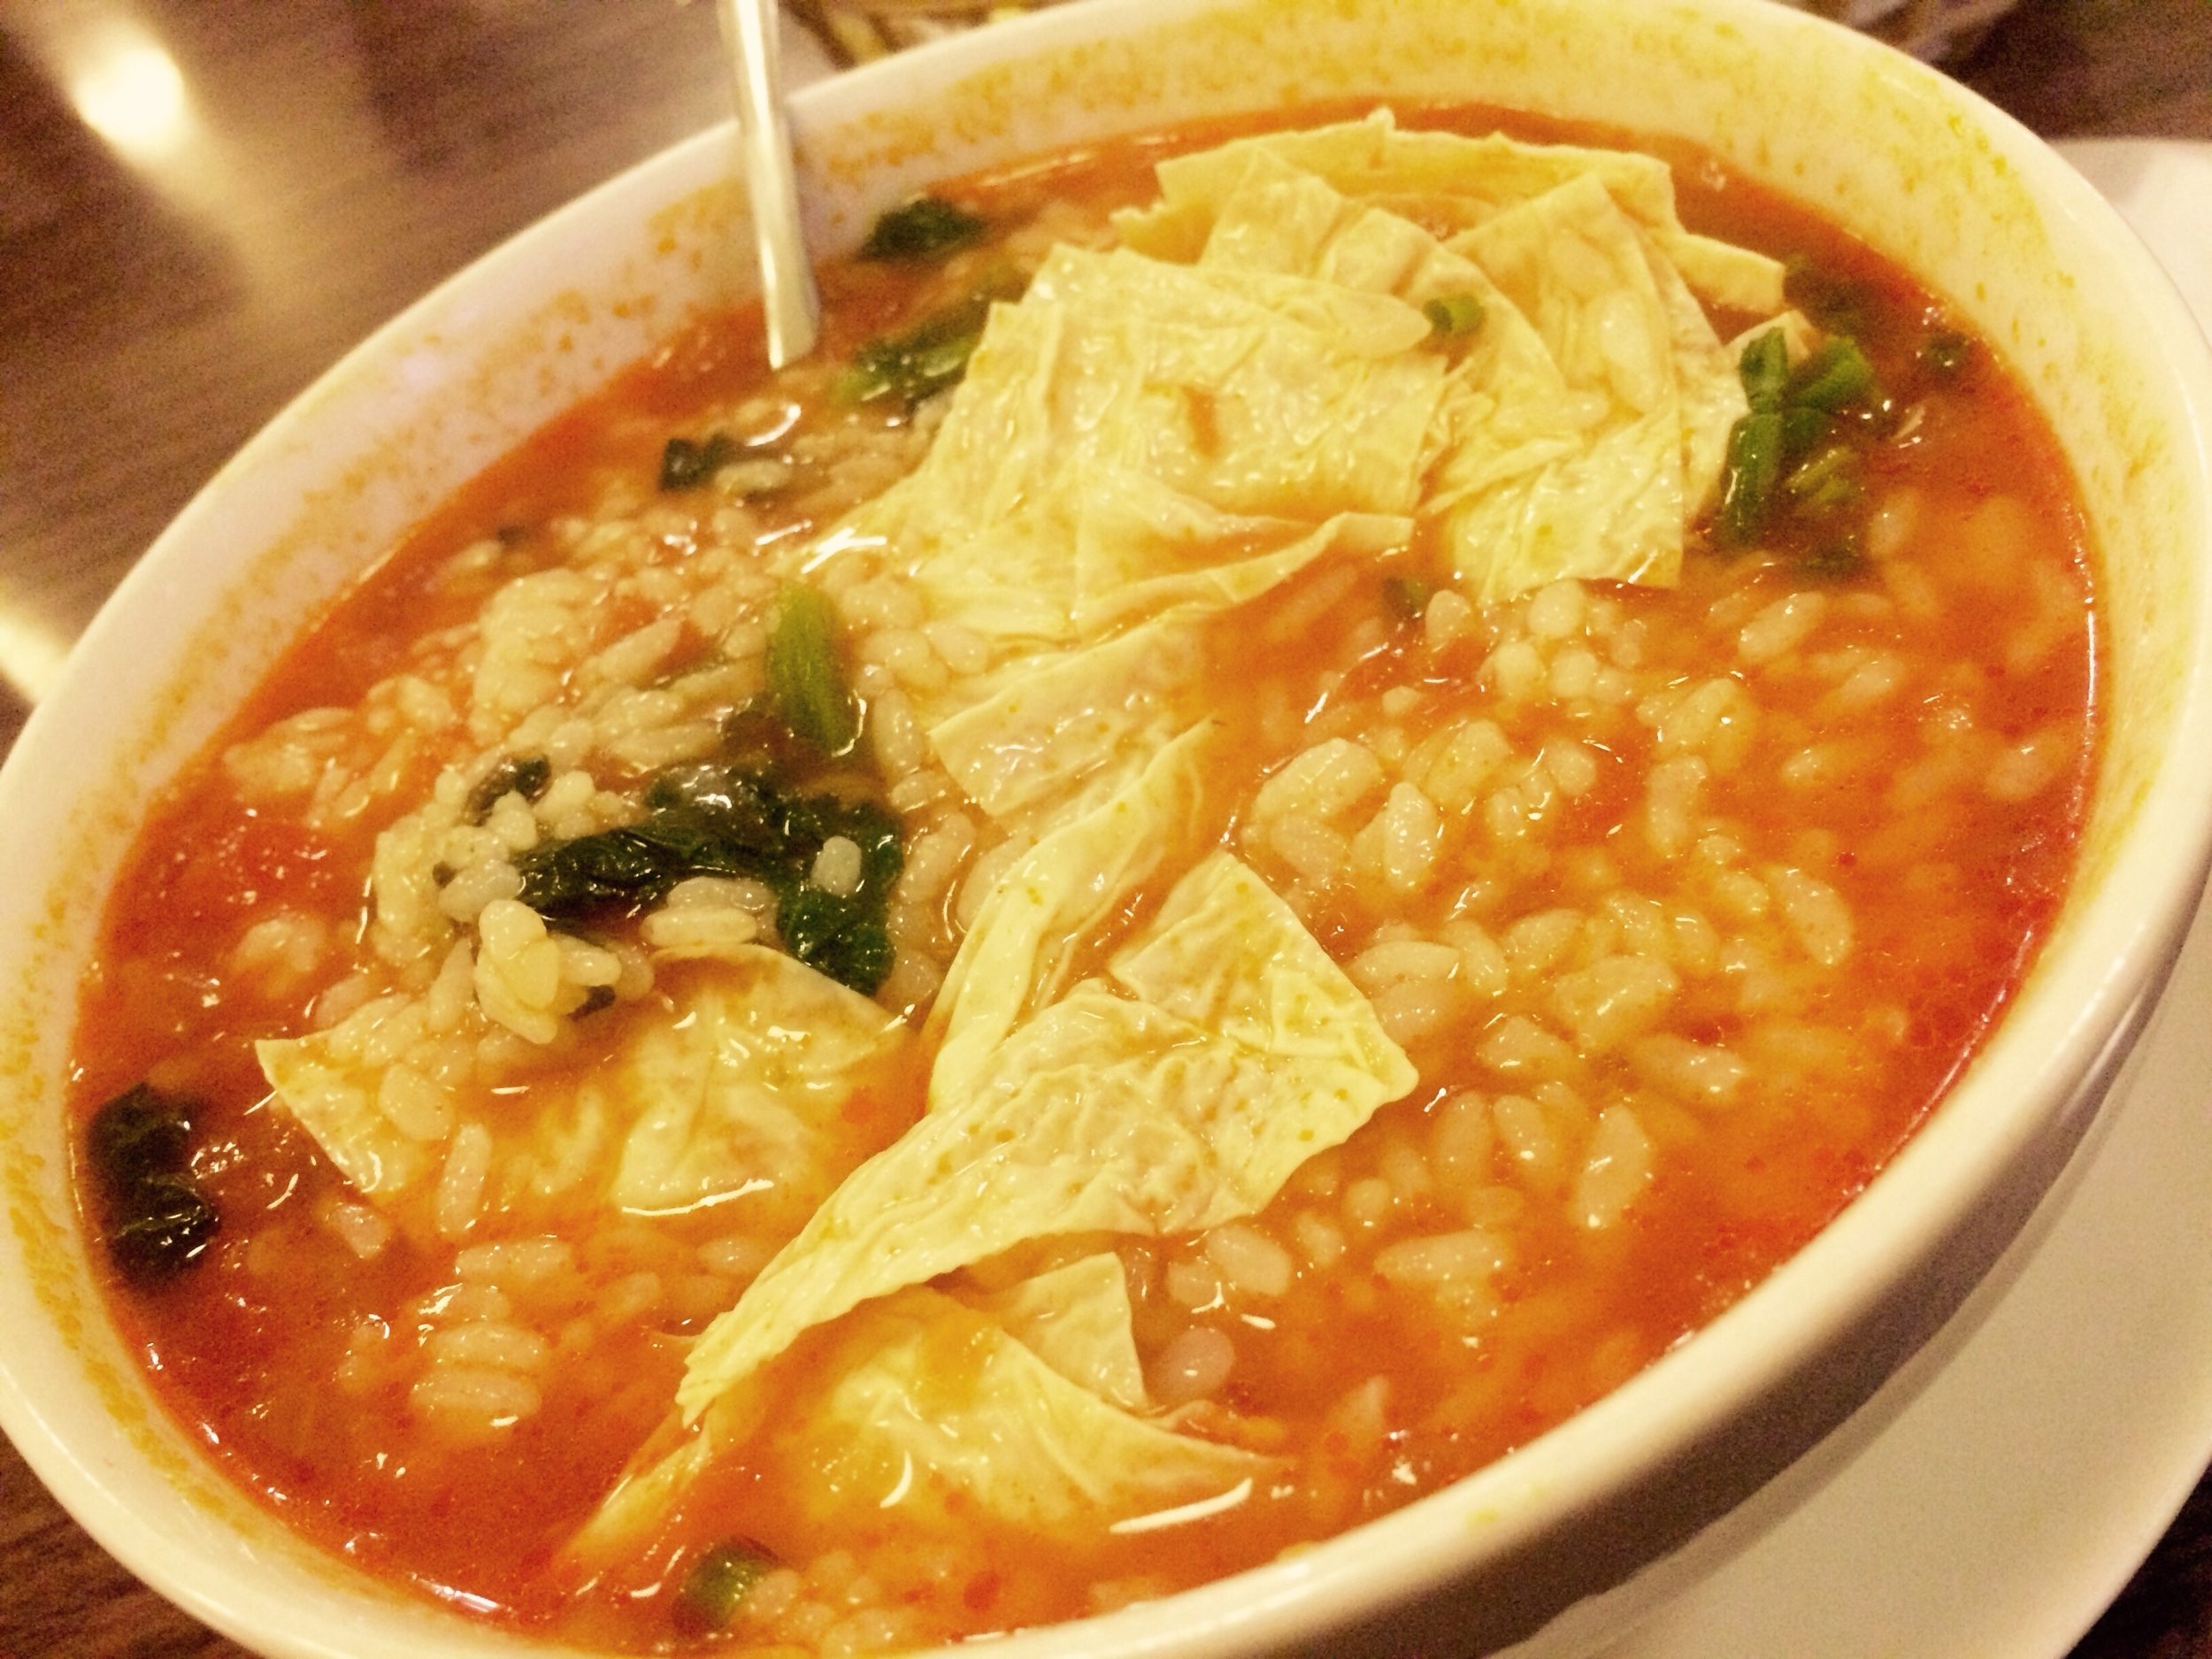 Tomato-miso soup with rice, spinach, and rice paper.